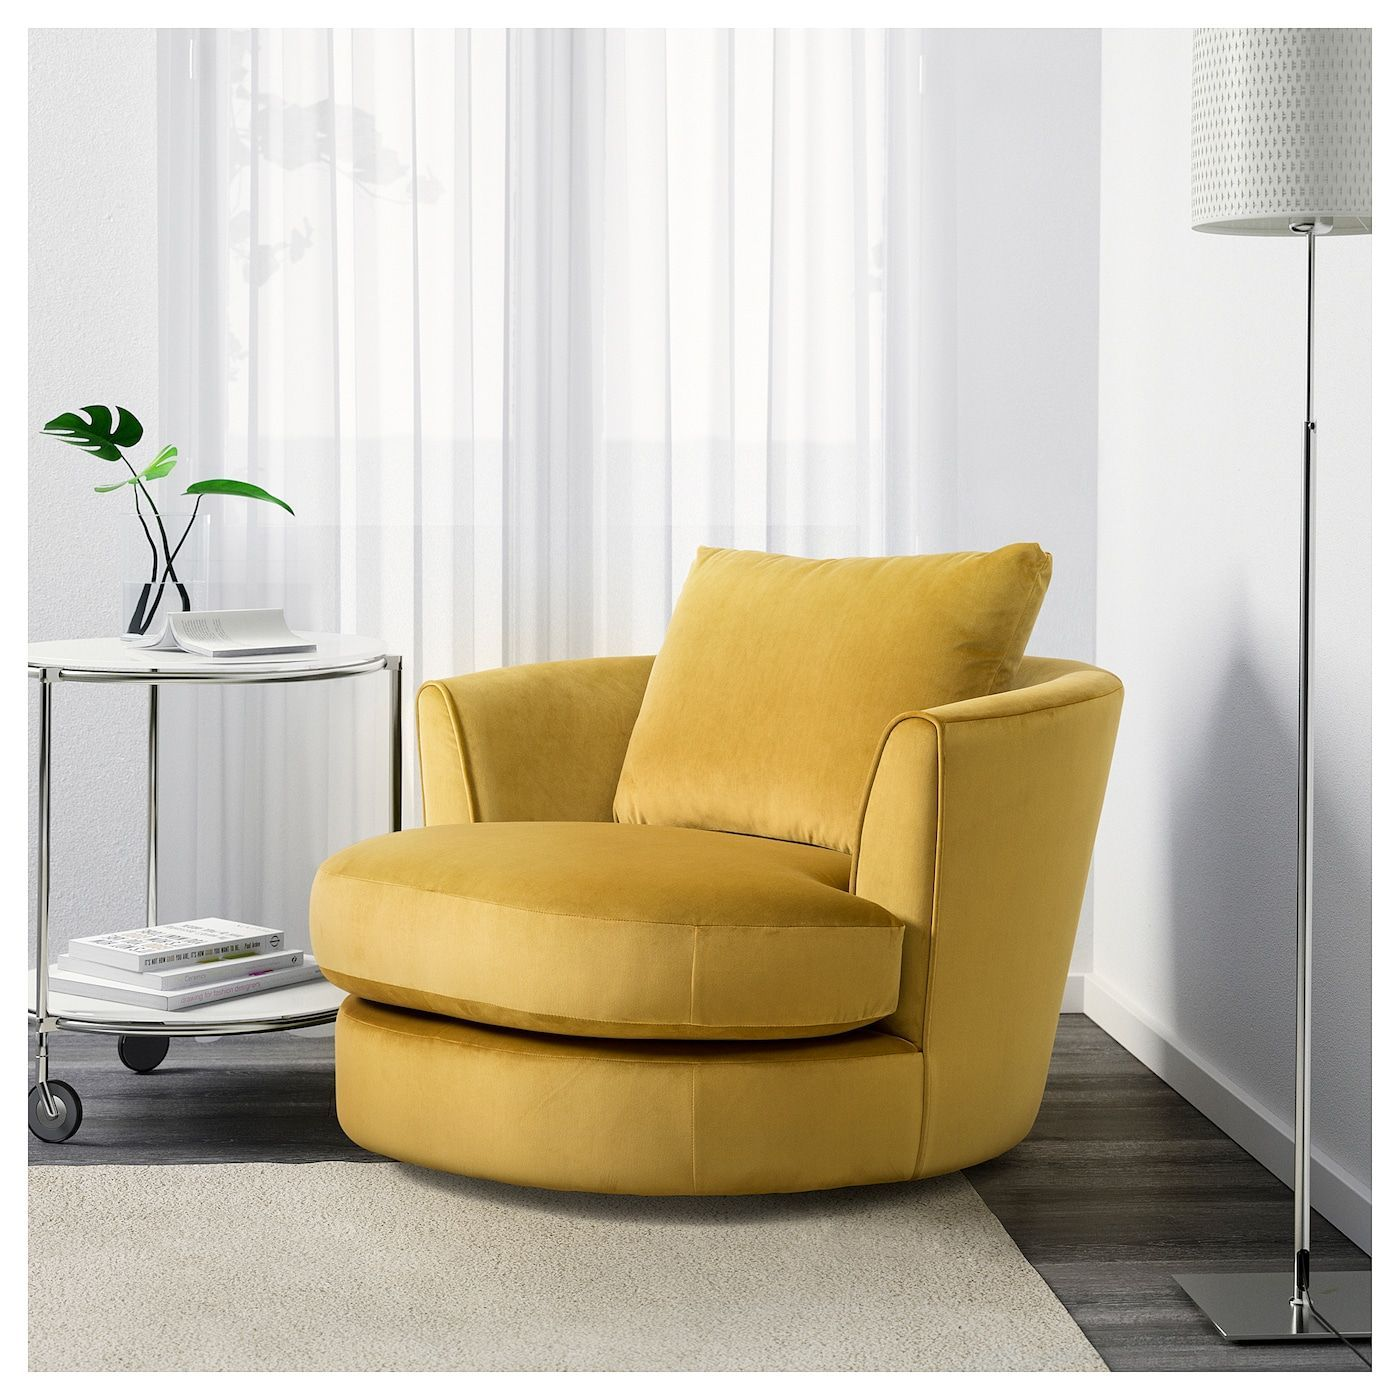 Fasalt Swivel Armchair Velvet Yellow Ikea Ikea Yellow Armchair Living Room Swivel Armchair Arm Chairs Living Room Yellow Armchair